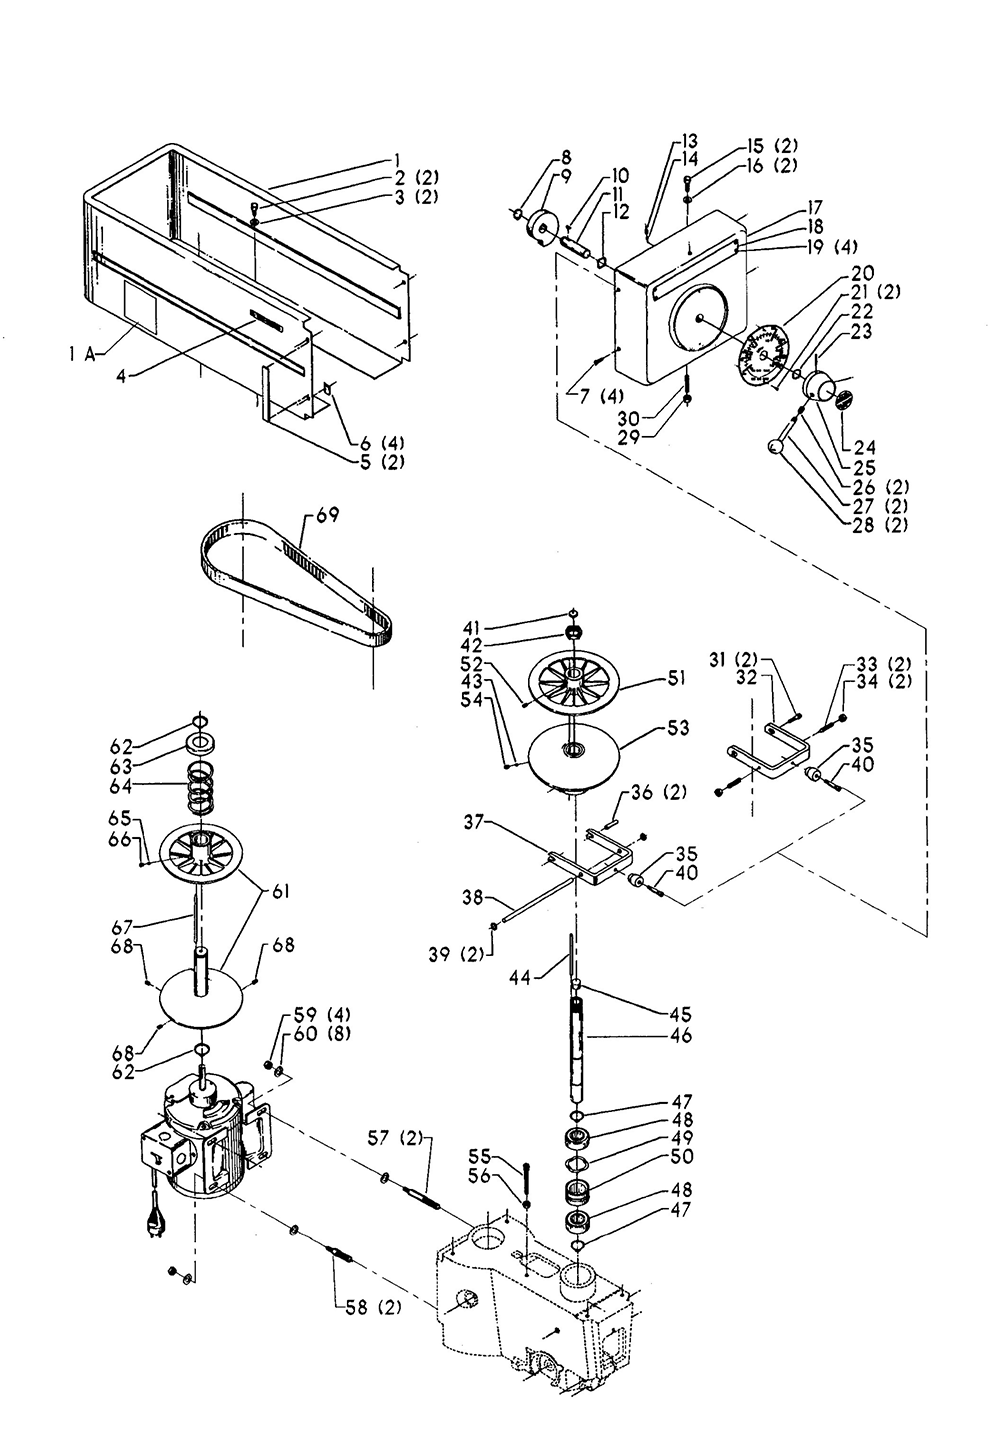 buy delta 15 352 type 1 replacement tool parts delta 15 352 type 1 accessories parts diagram